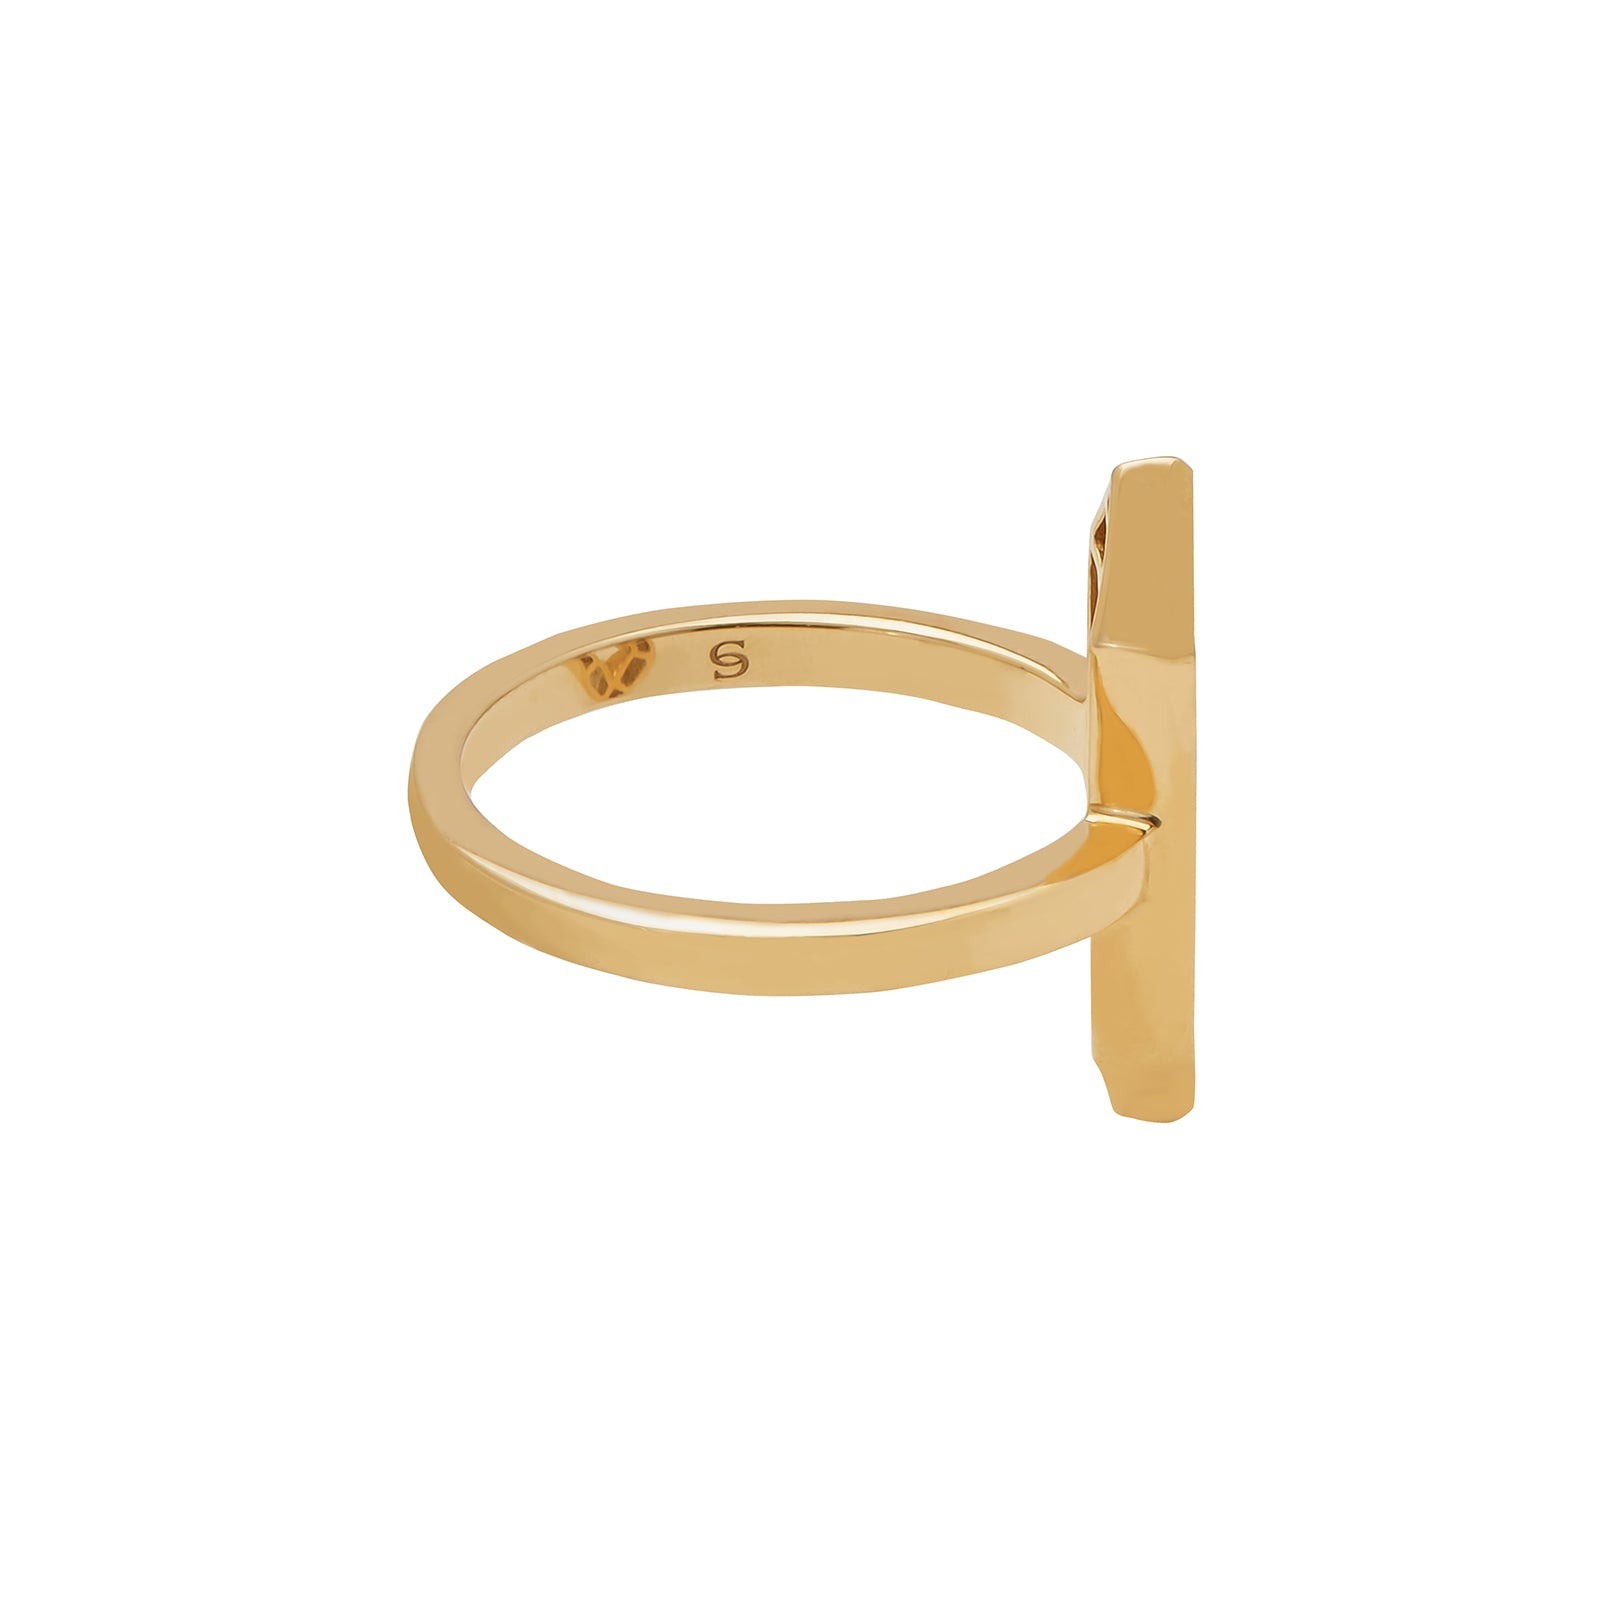 Sethi Couture The Kerri Ring - Rings - Broken English Jewelry